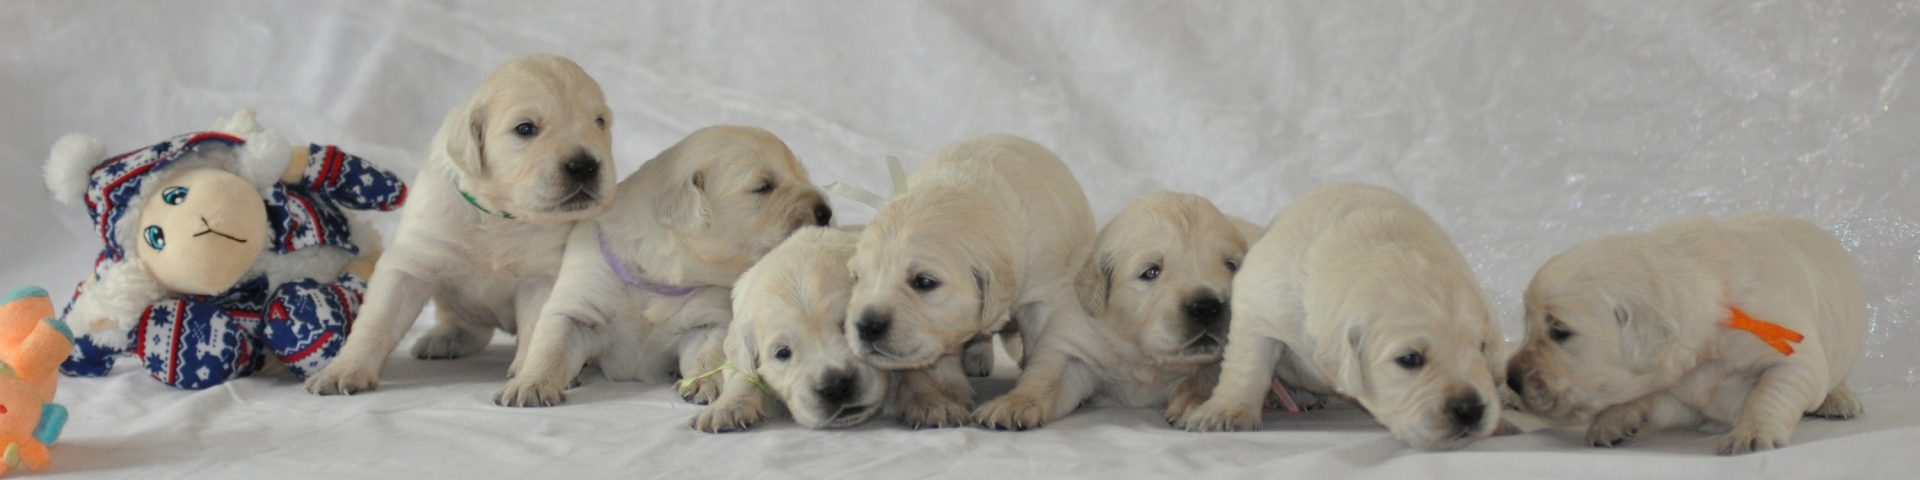 Elevage Familial des Fields de Ora - Golden Retriever